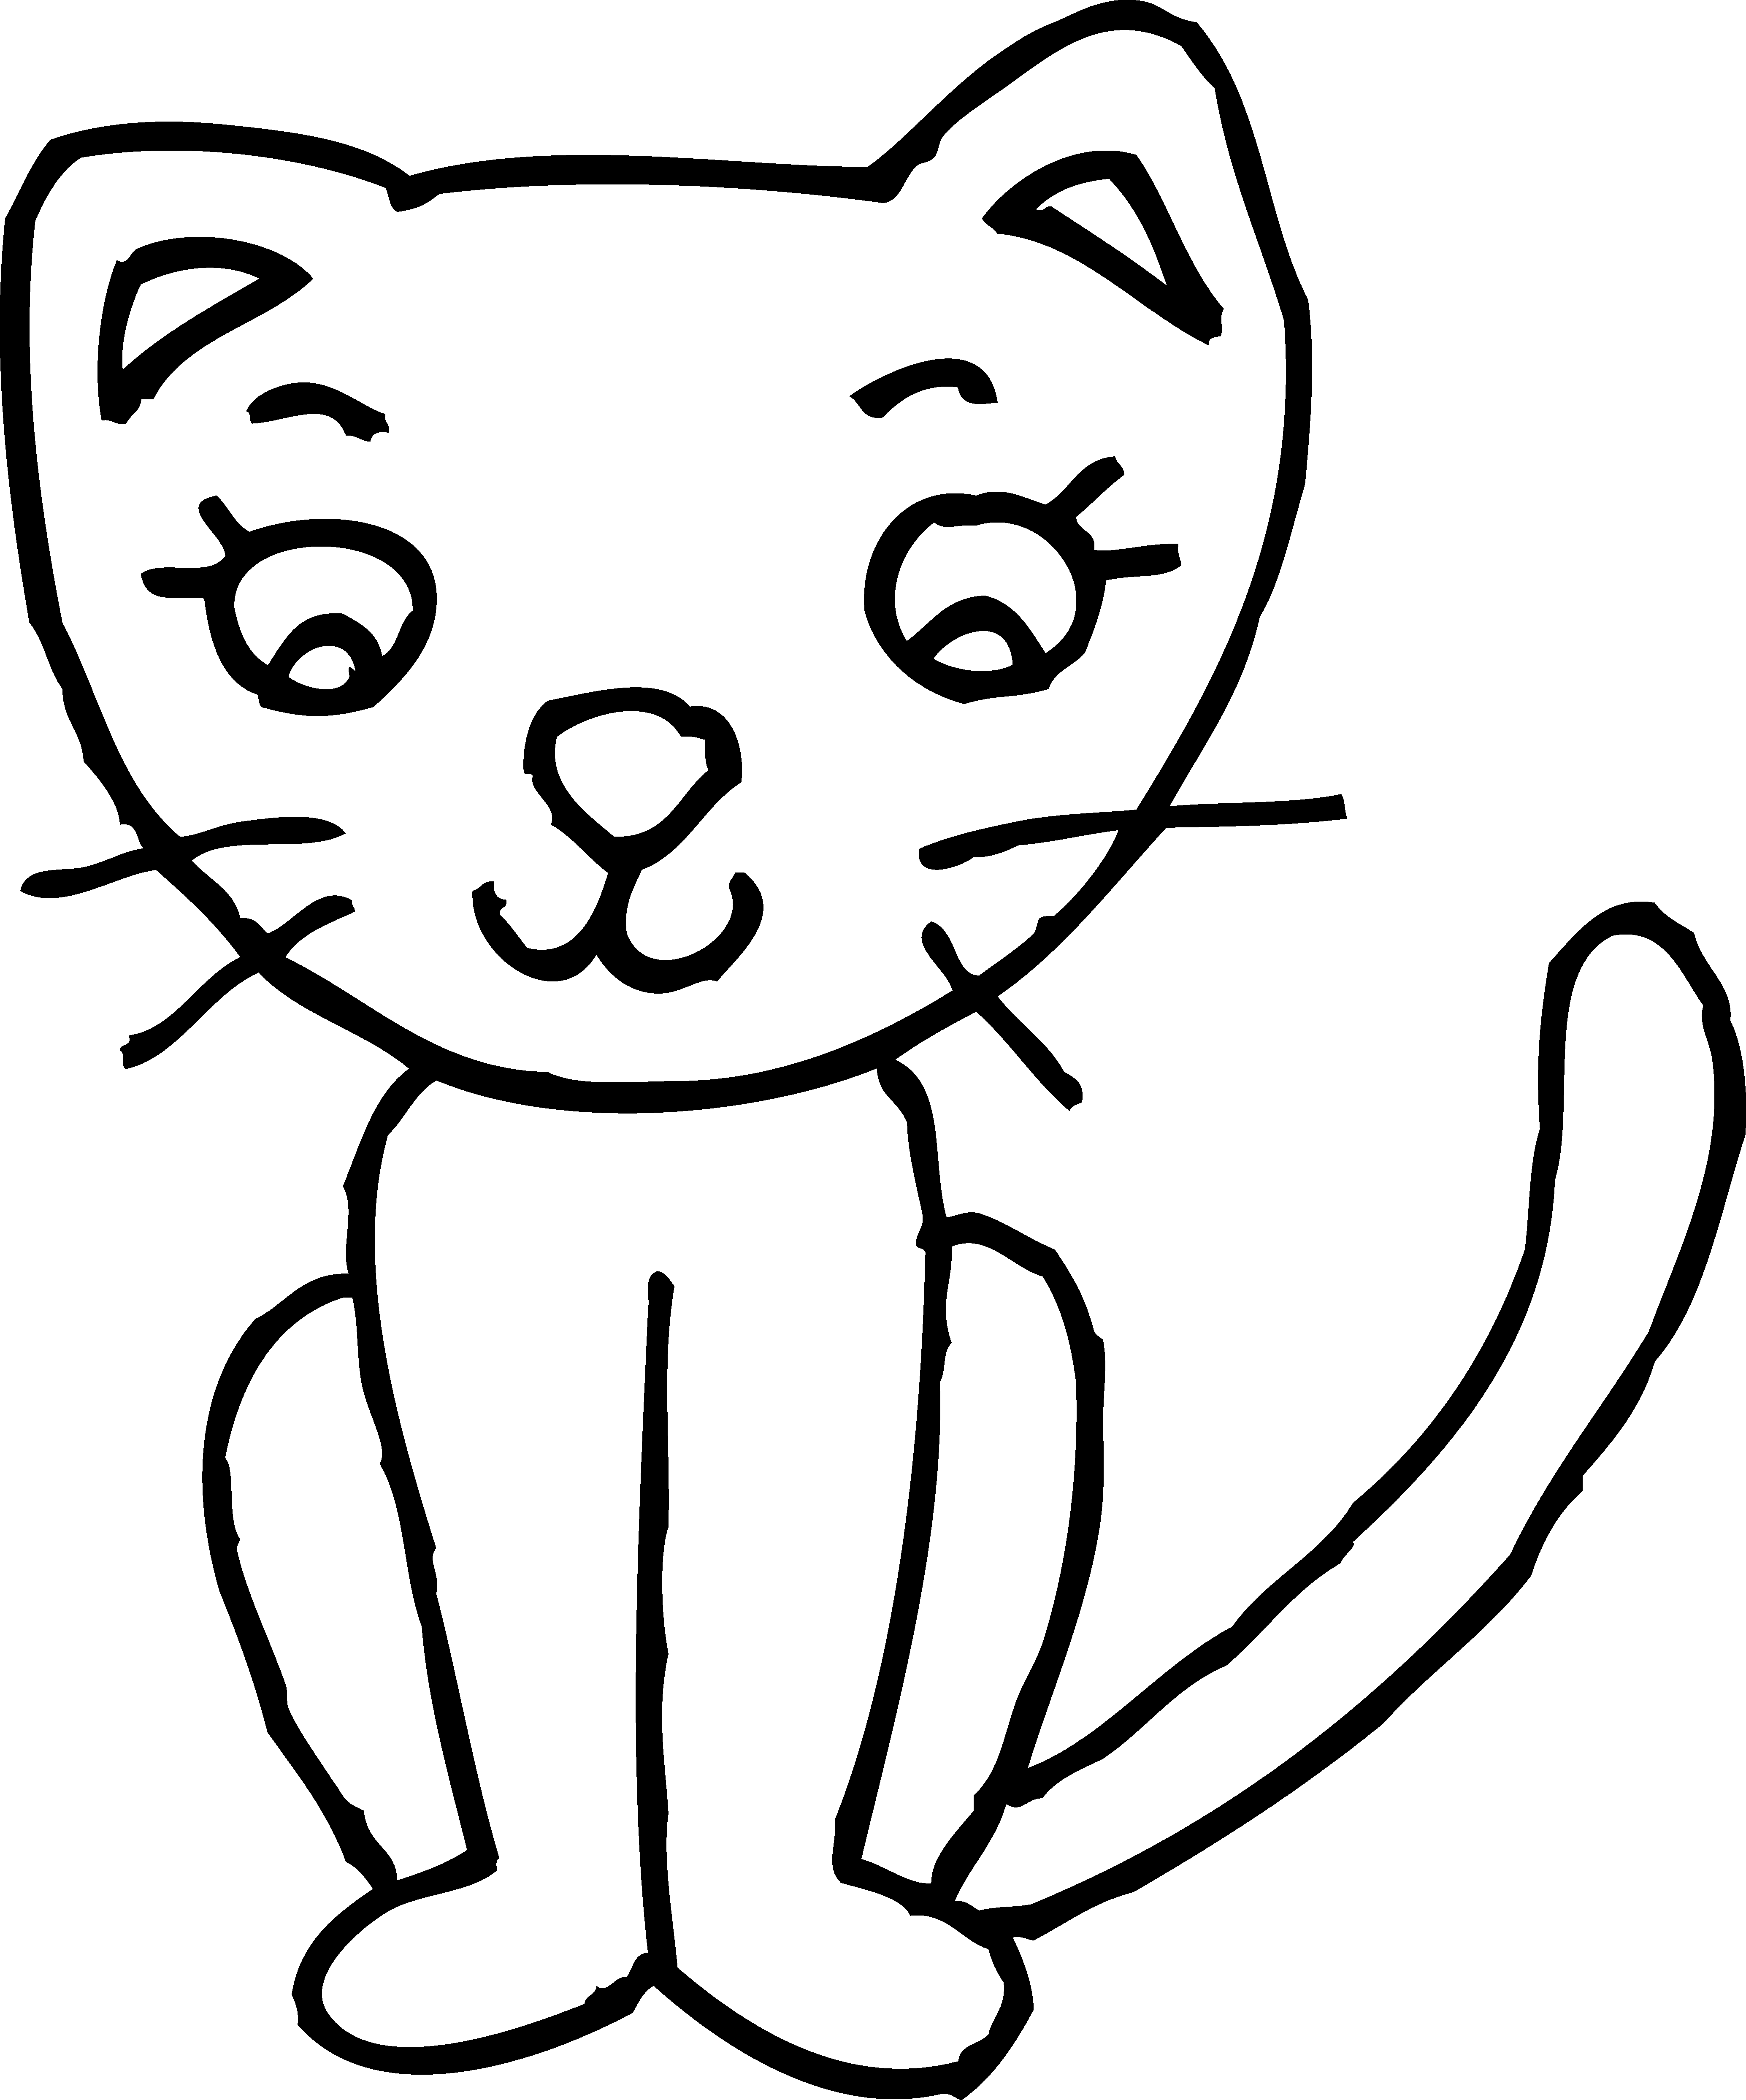 Drawing simple cliparts free. Cat clipart black and white clip art library stock